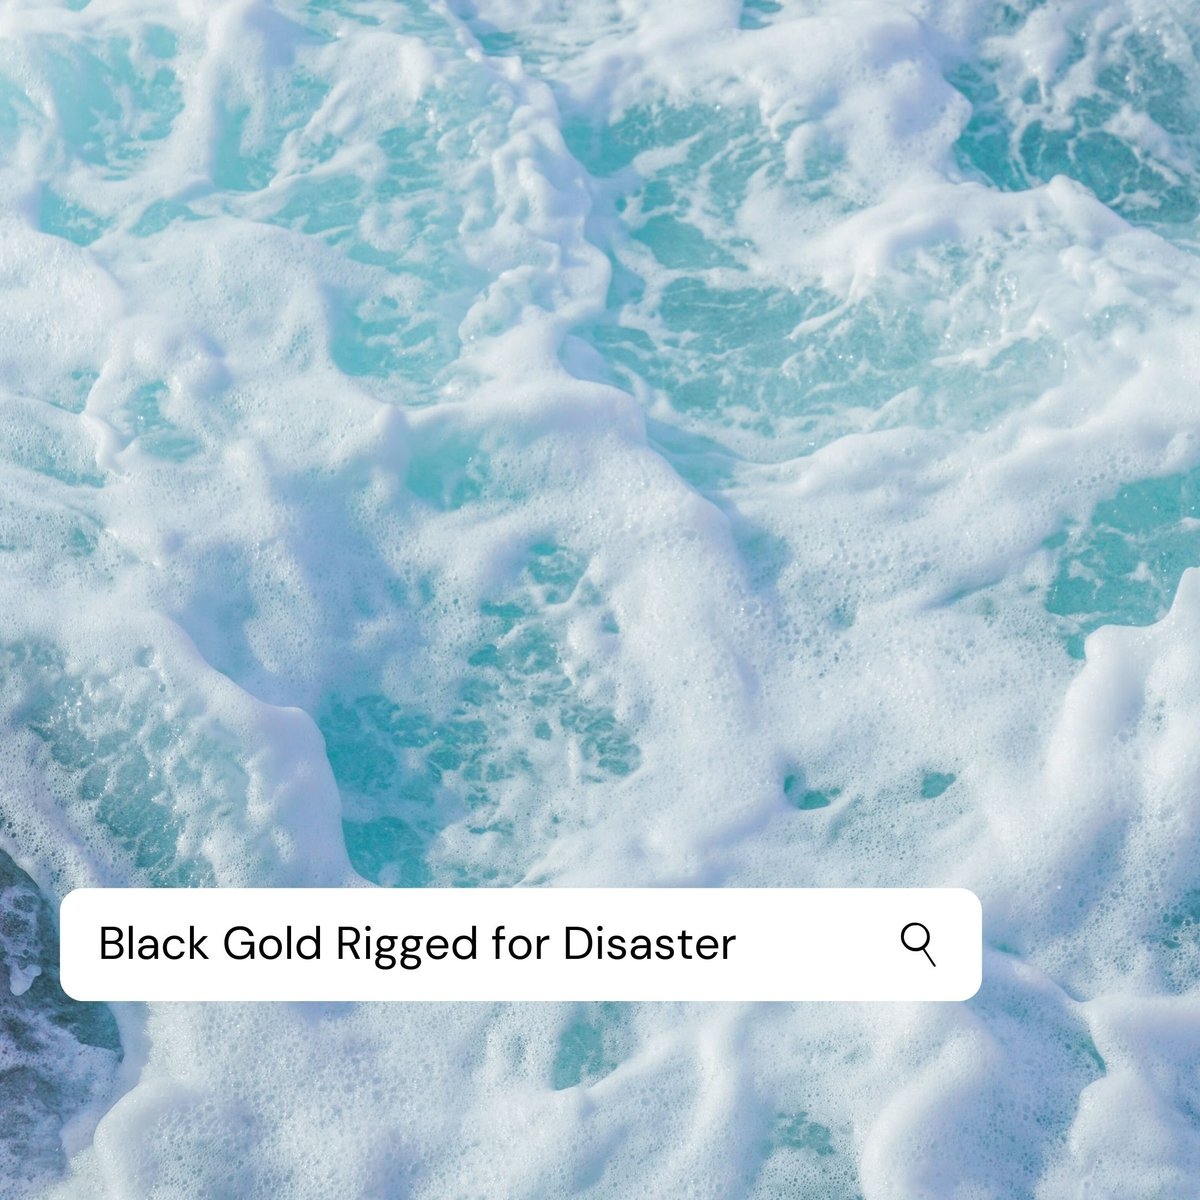 Lockdown hack continued- rainy weather? Solve our stormy Black Gold Rigged for Disaster mystery game at home or virtually to have some summer fun! #murdermystery #mysterygame #lockdown Learn more about our DIY games and virtual mystery experiences at